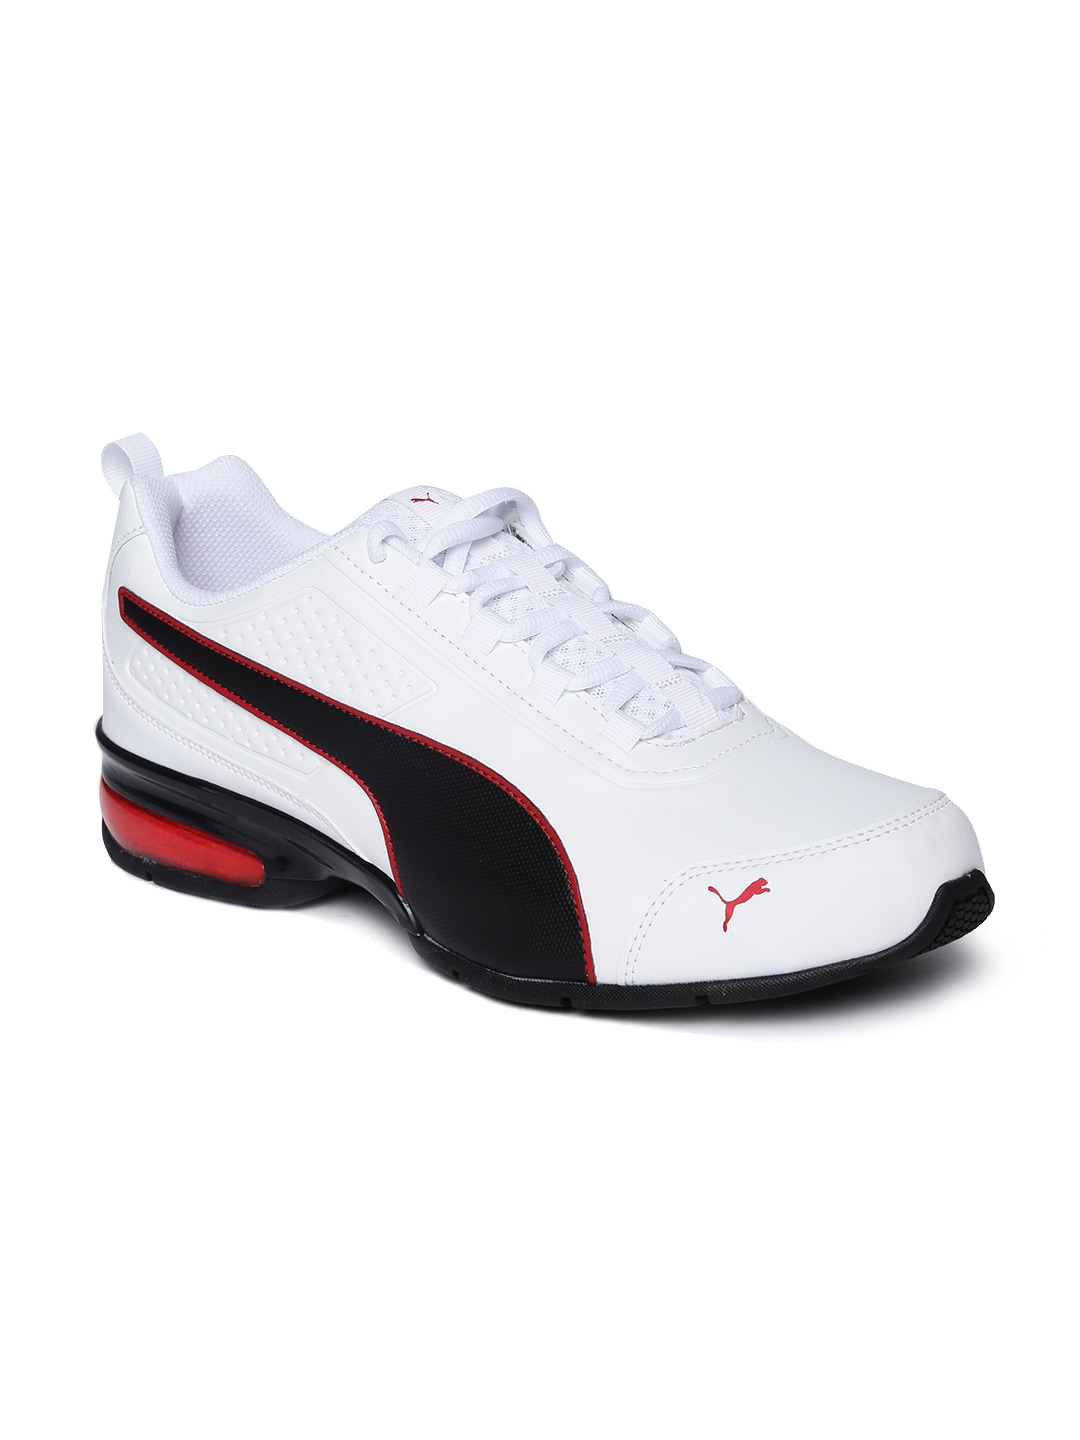 ef7ded575ea0 Buy Puma Men White   Red Feral Runner Running Shoes - Sports Shoes ...